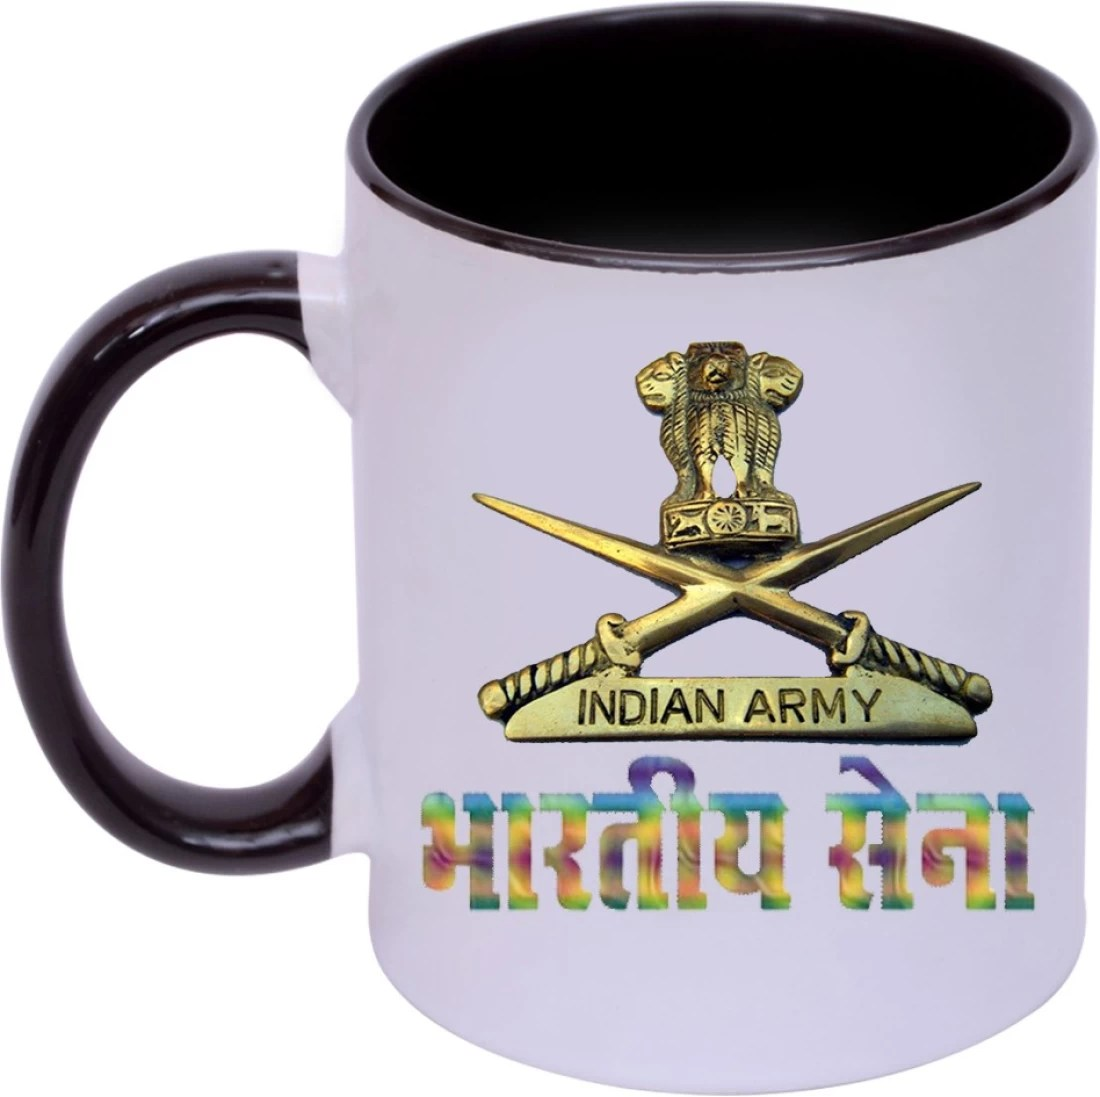 Rjkart Ceramic Indian Army Logo And Sena Printed Coffee For Gift Black And White Ceramic Coffee Mug Price In India Buy Rjkart Ceramic Indian Army Logo And Sena Printed Coffee For